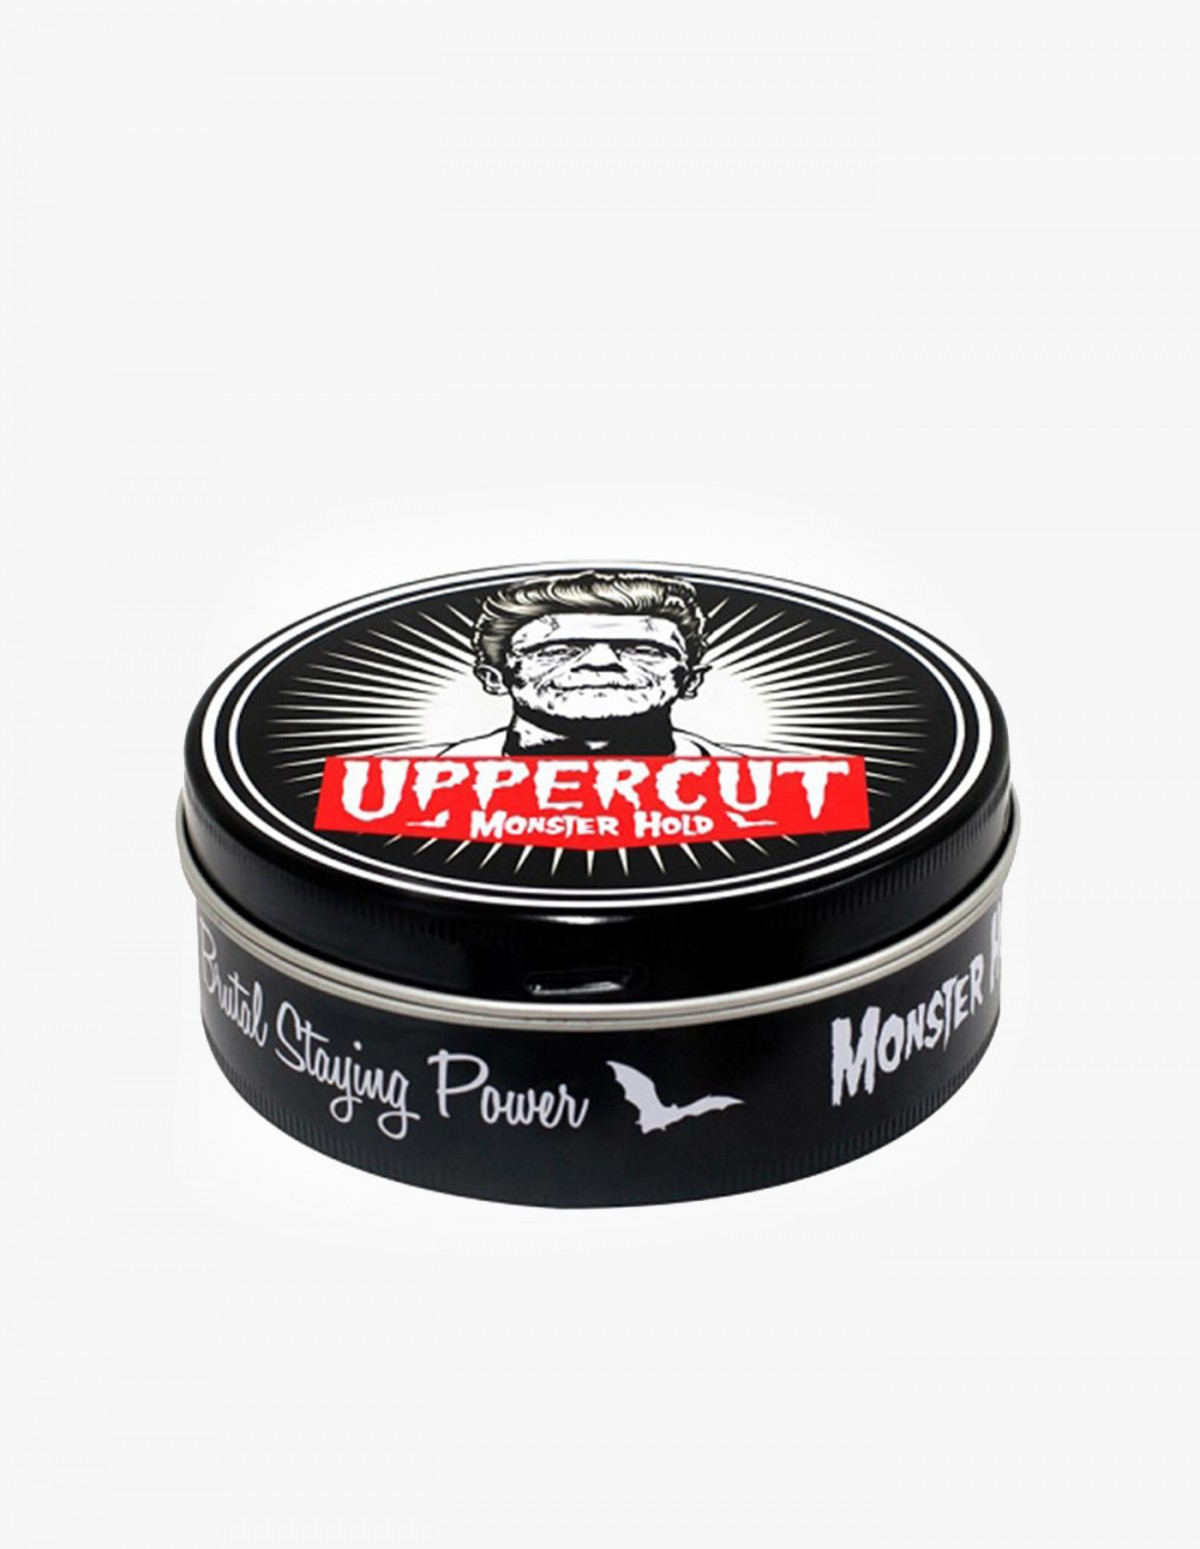 Uppercut Deluxe Monster Hold in